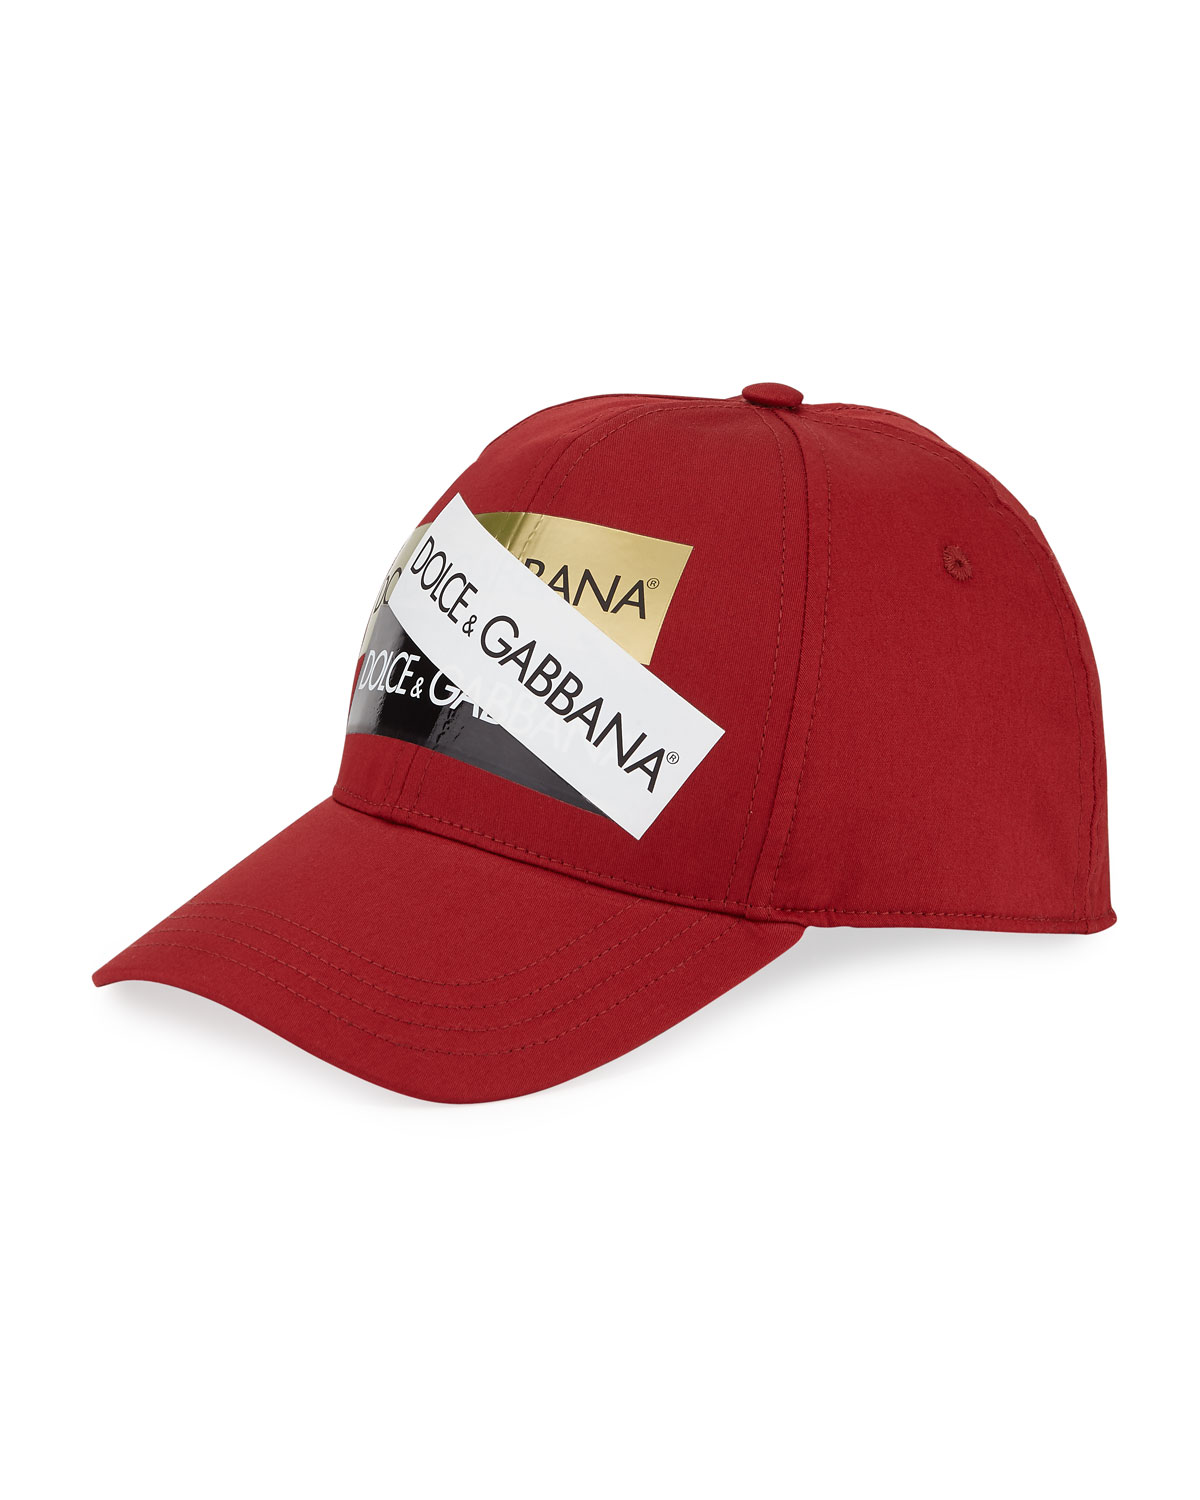 7728de6246dac Dolce   Gabbana Men s Baseball Cap with Shiny Logo Tape